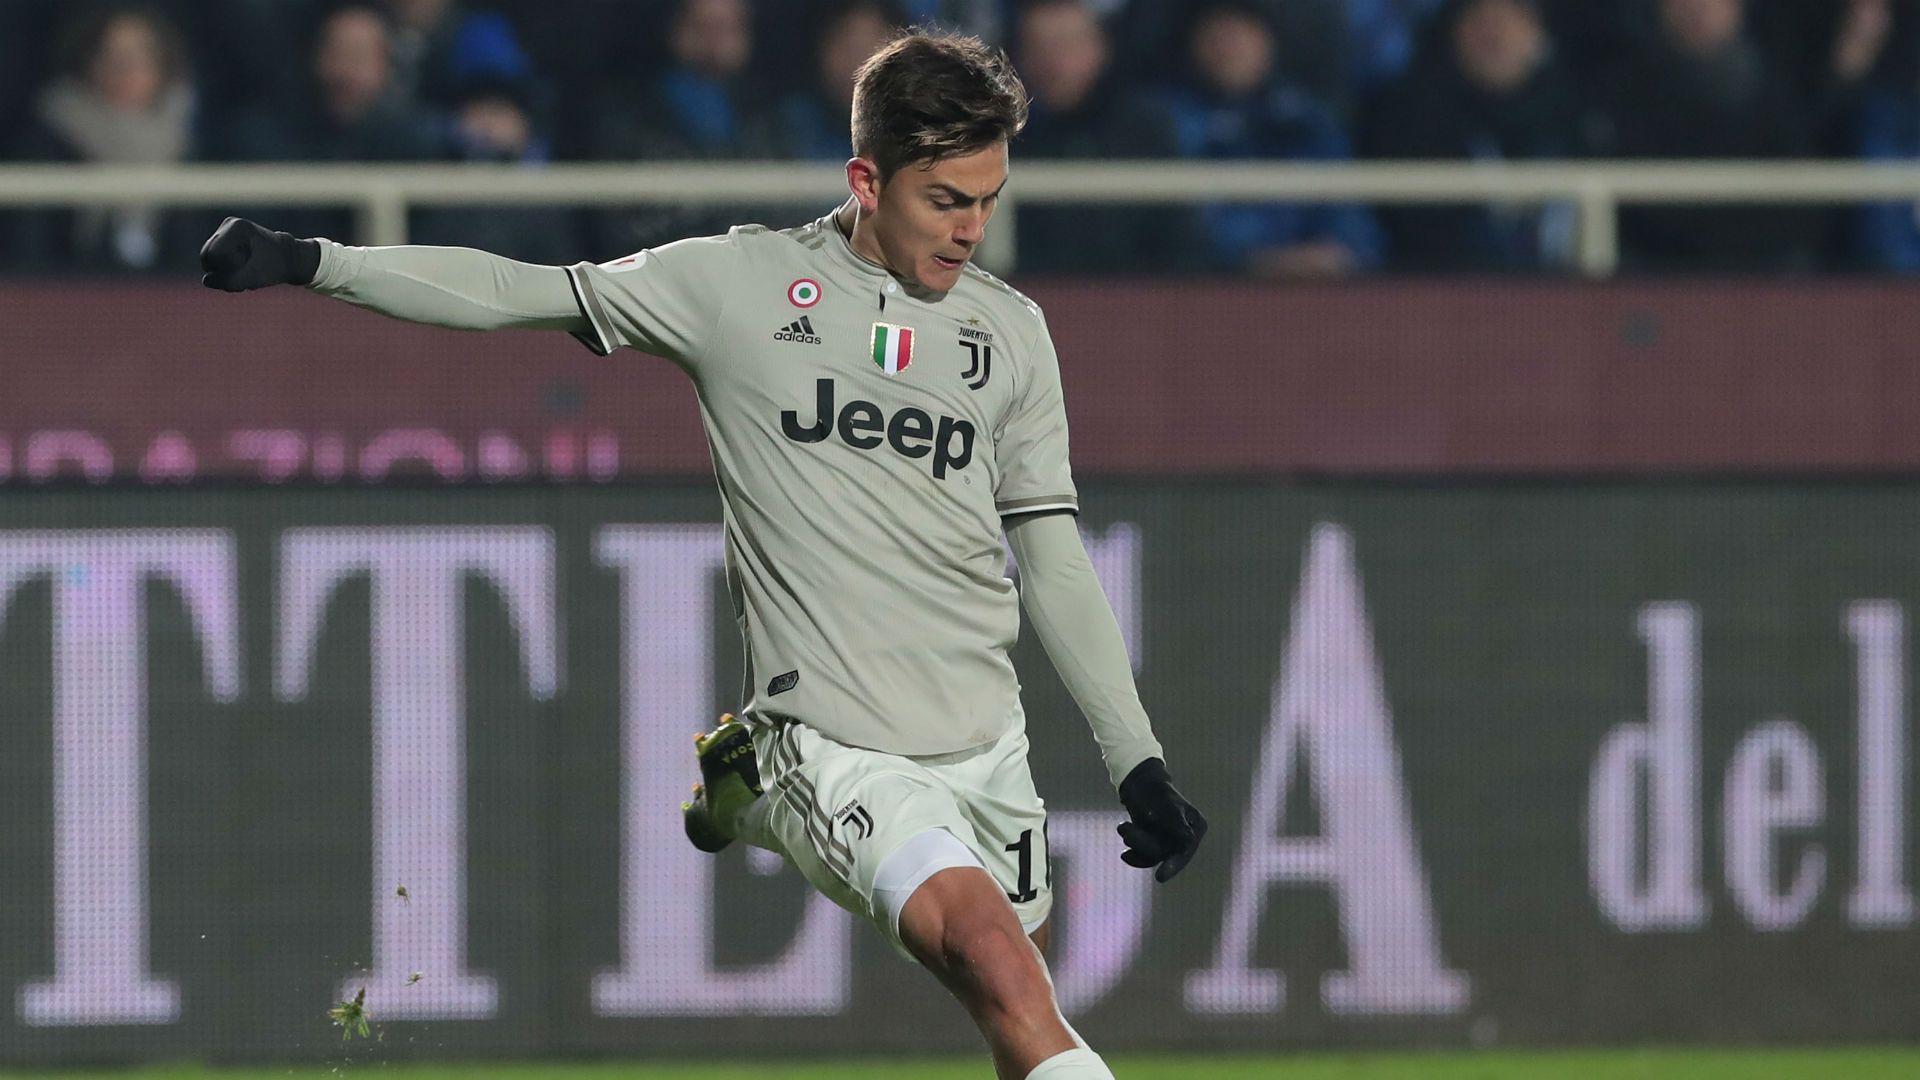 Ronaldo scores 18th league goal for Juventus against Sassuolo